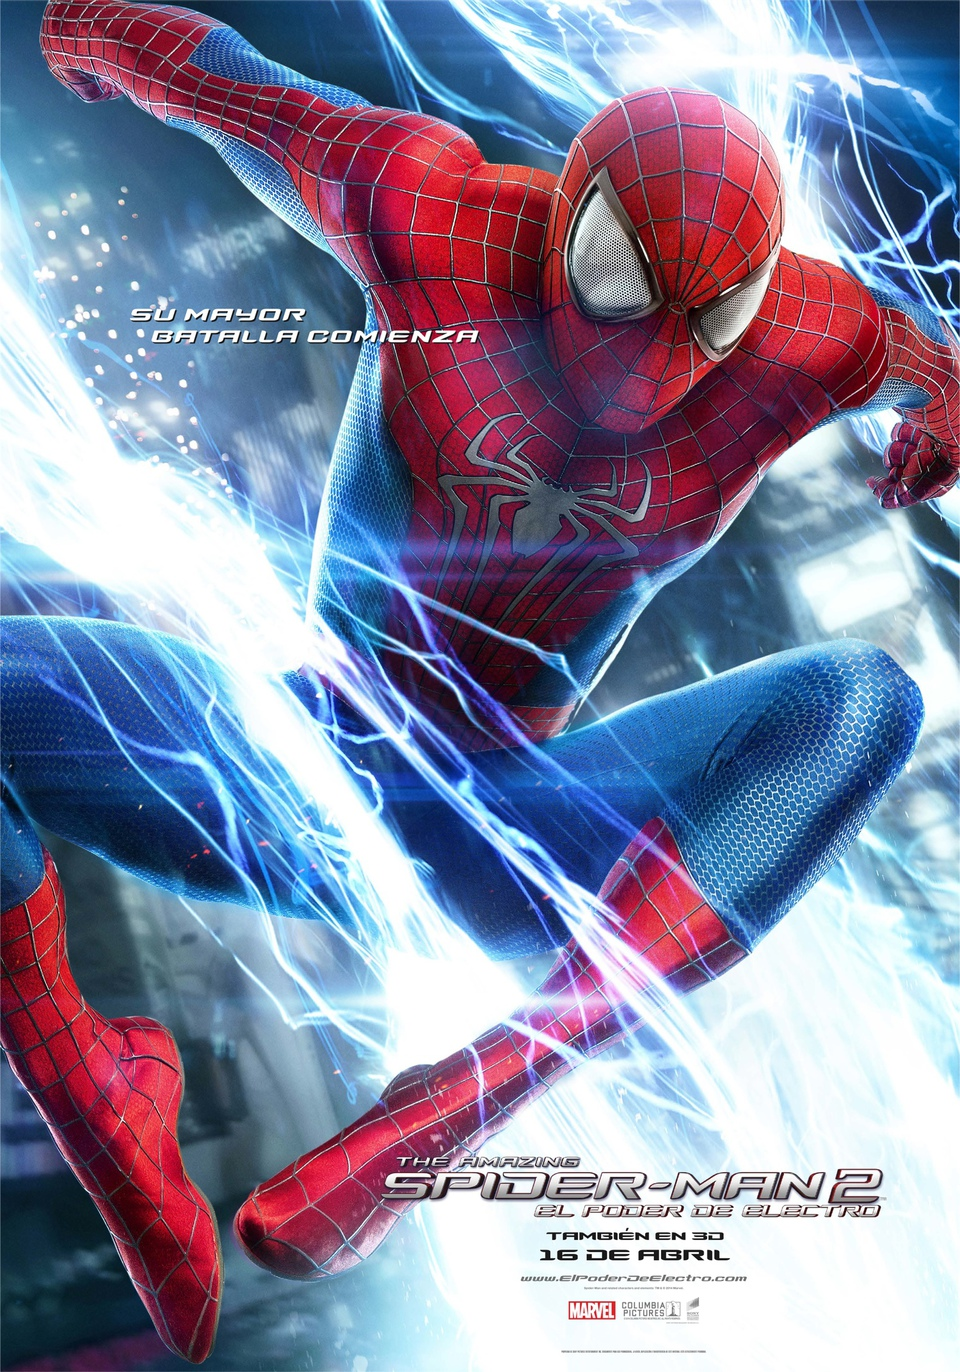 THE AMAZING SPIDER-MAN 2 EL PODER DE ELECTRO V.O.S